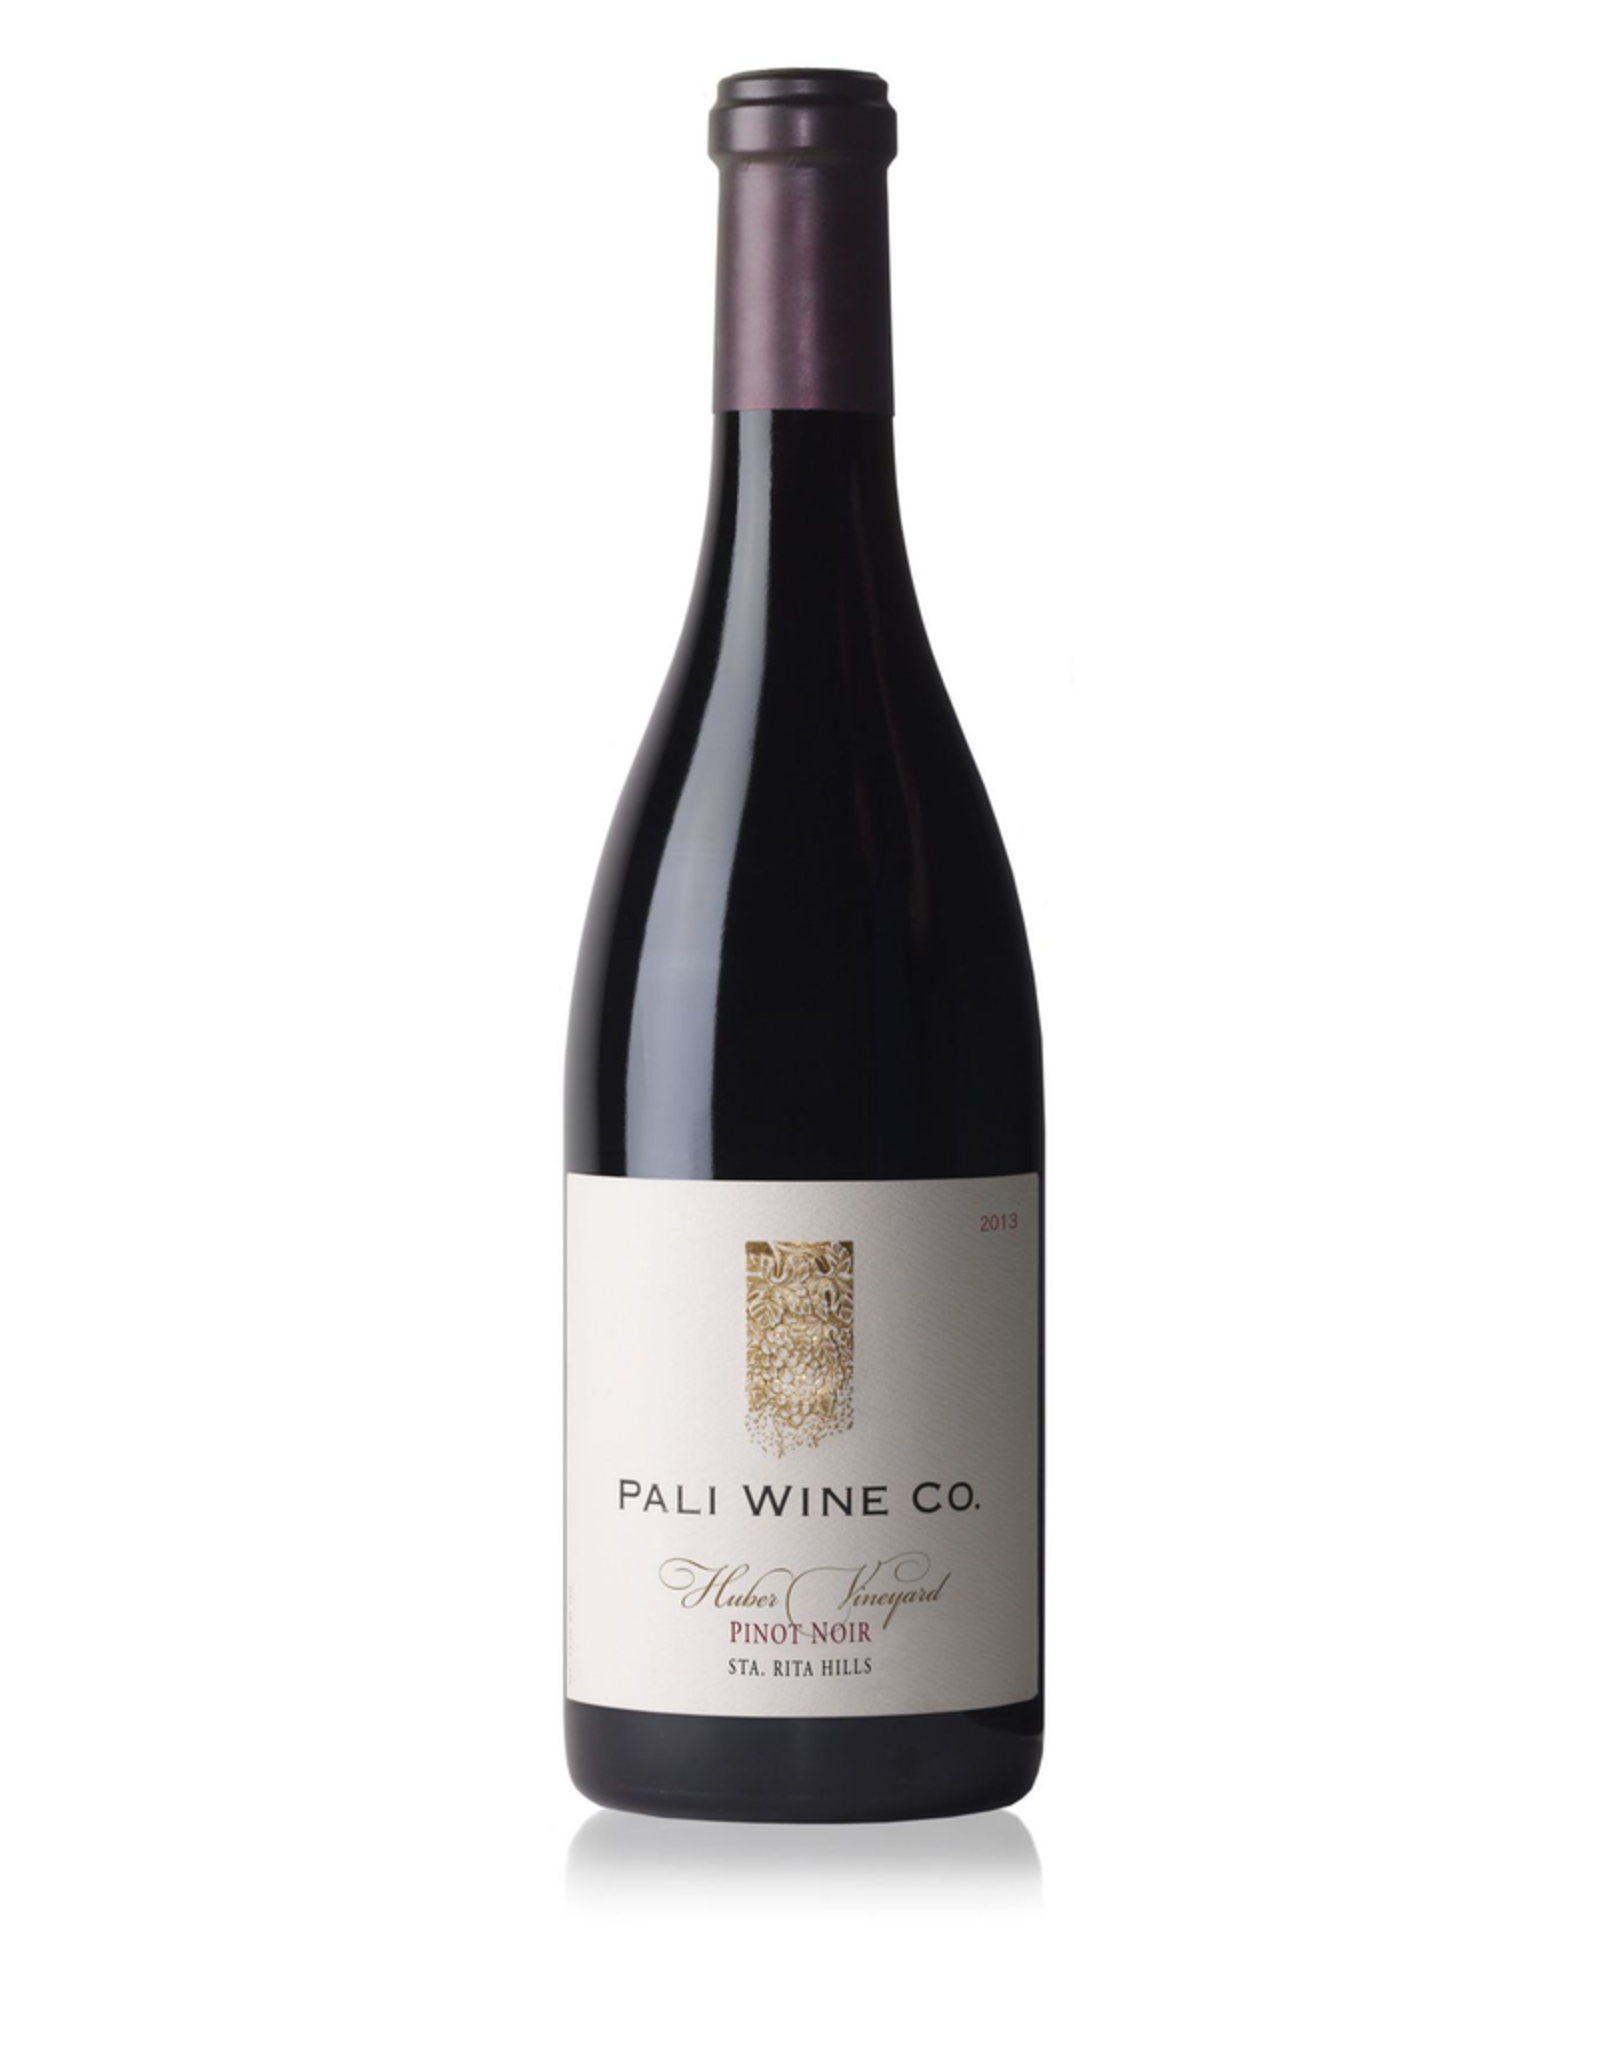 Red Wine 2013, Pali Wine Co. Huber Vineyard, Pinot Noir, Sta. Rita Hills, Central Coast, California, 15.1% Alc, CT90, TW93